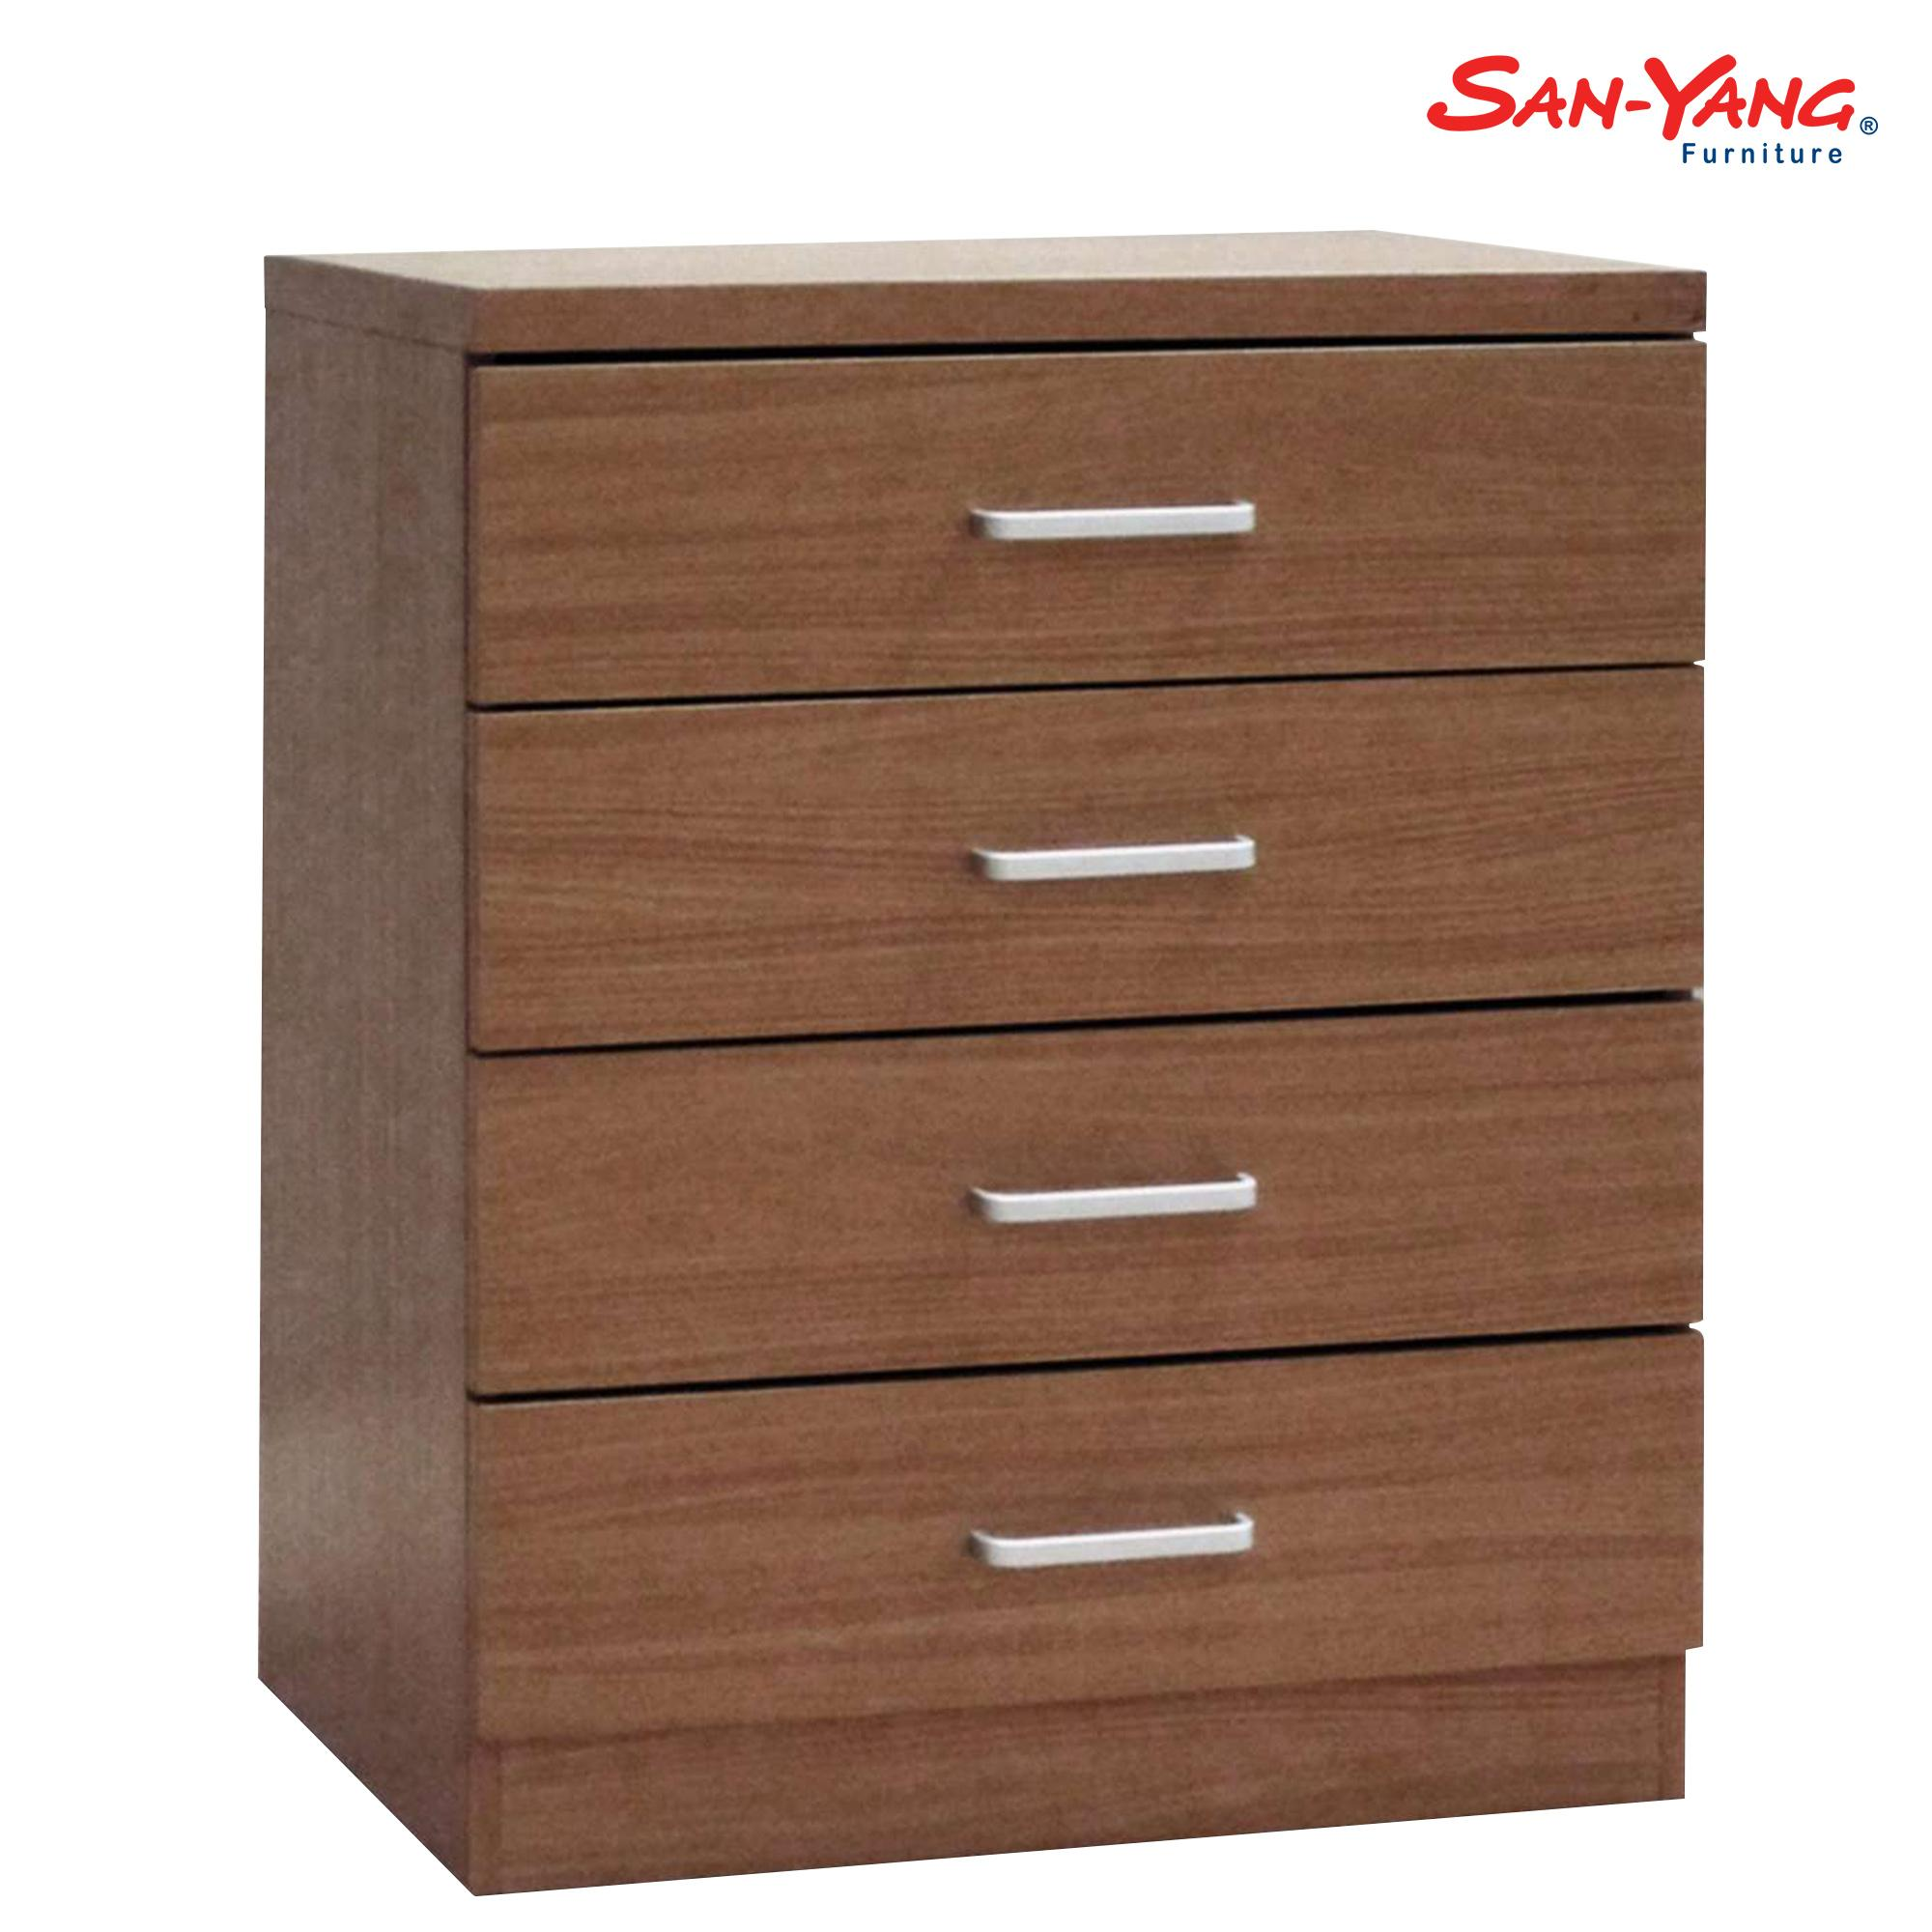 San yang chest drawer fcd5044 w oak